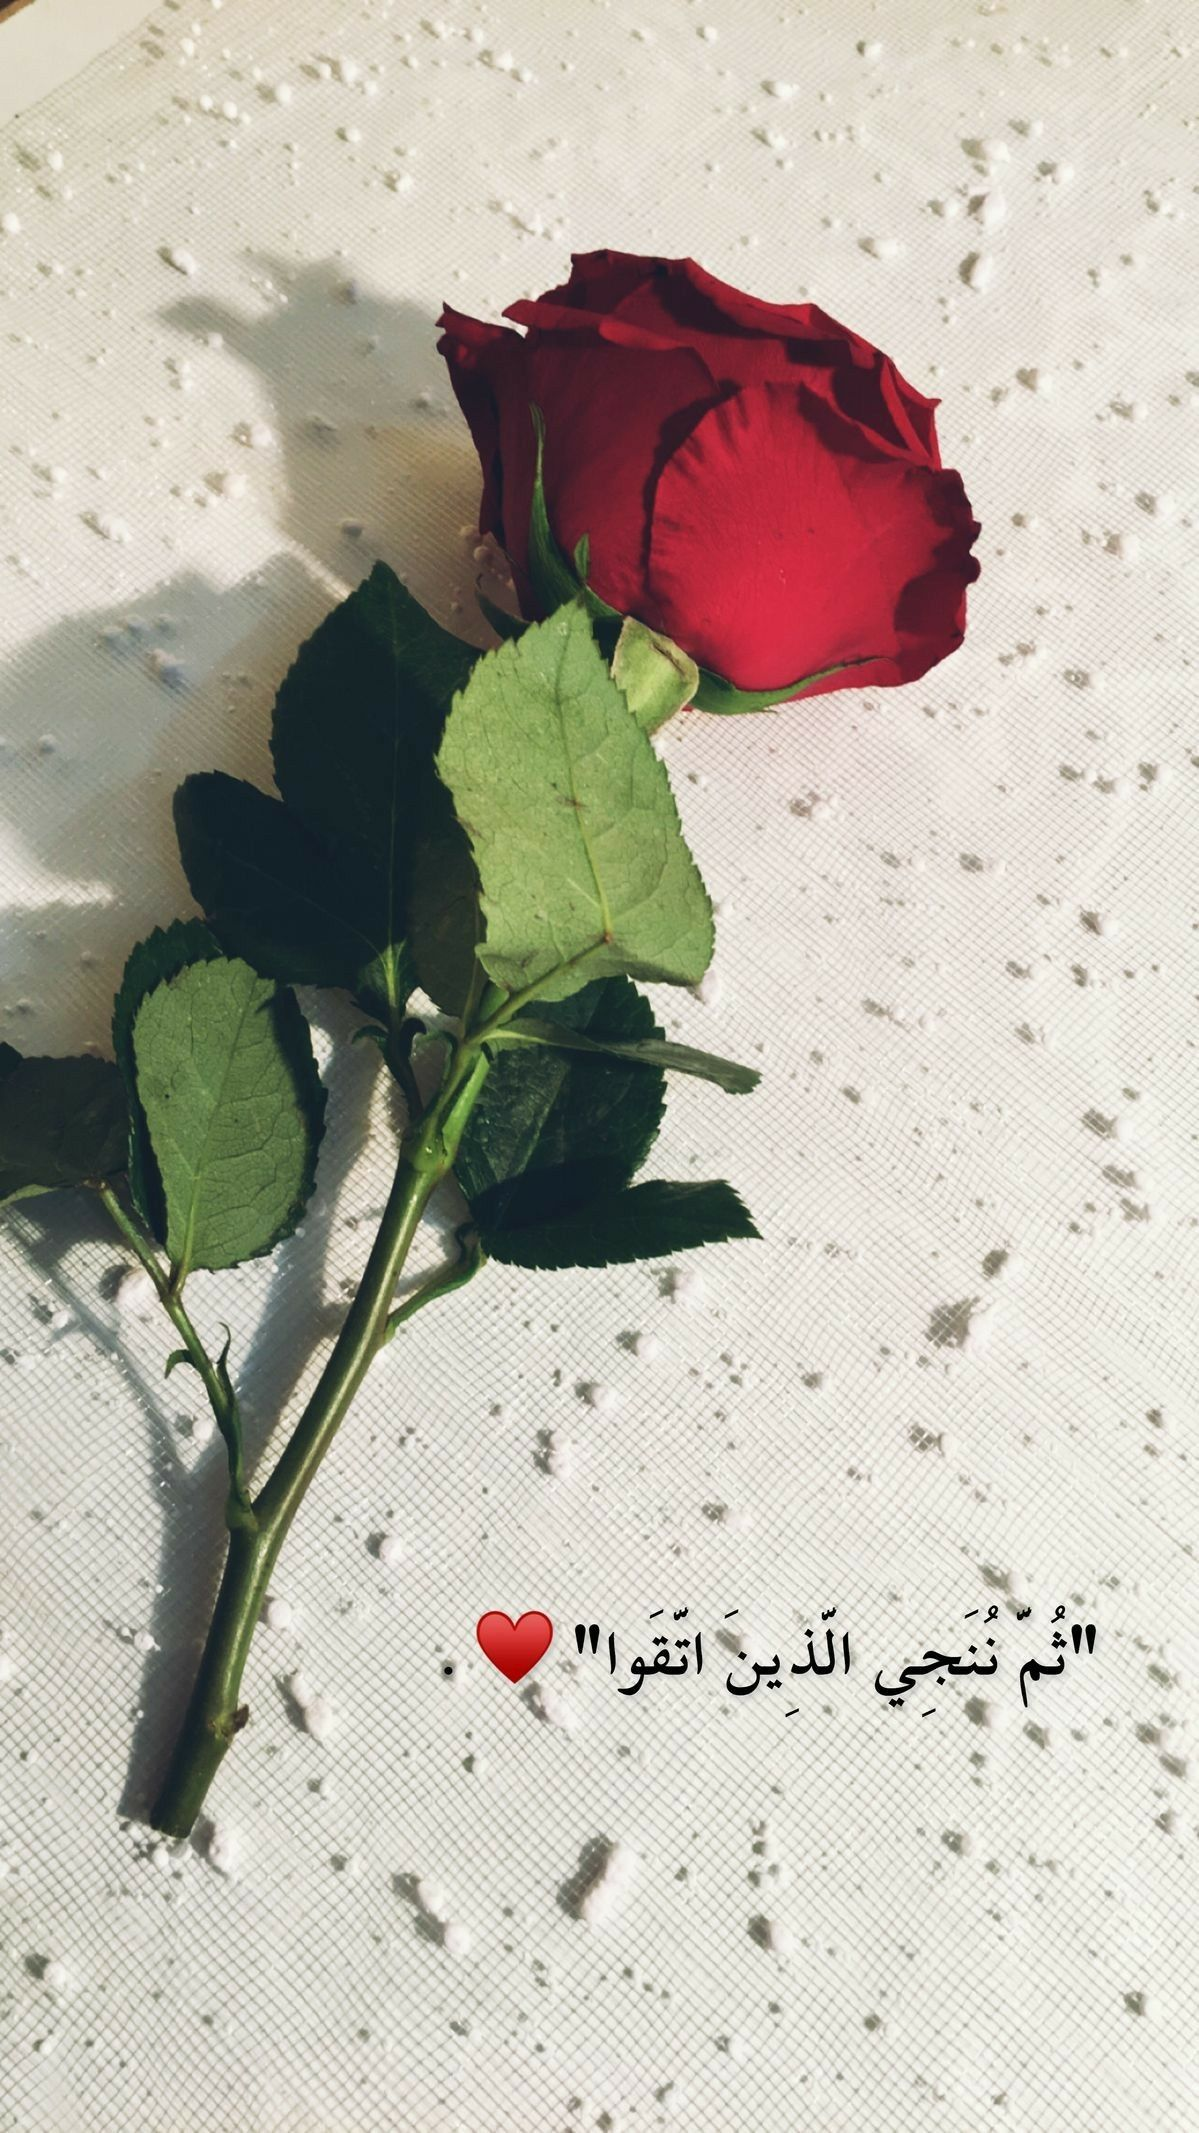 Pin By Queen Jana On Arabic Quotes Beautiful Arabic Words Cover Photo Quotes Arabic Love Quotes